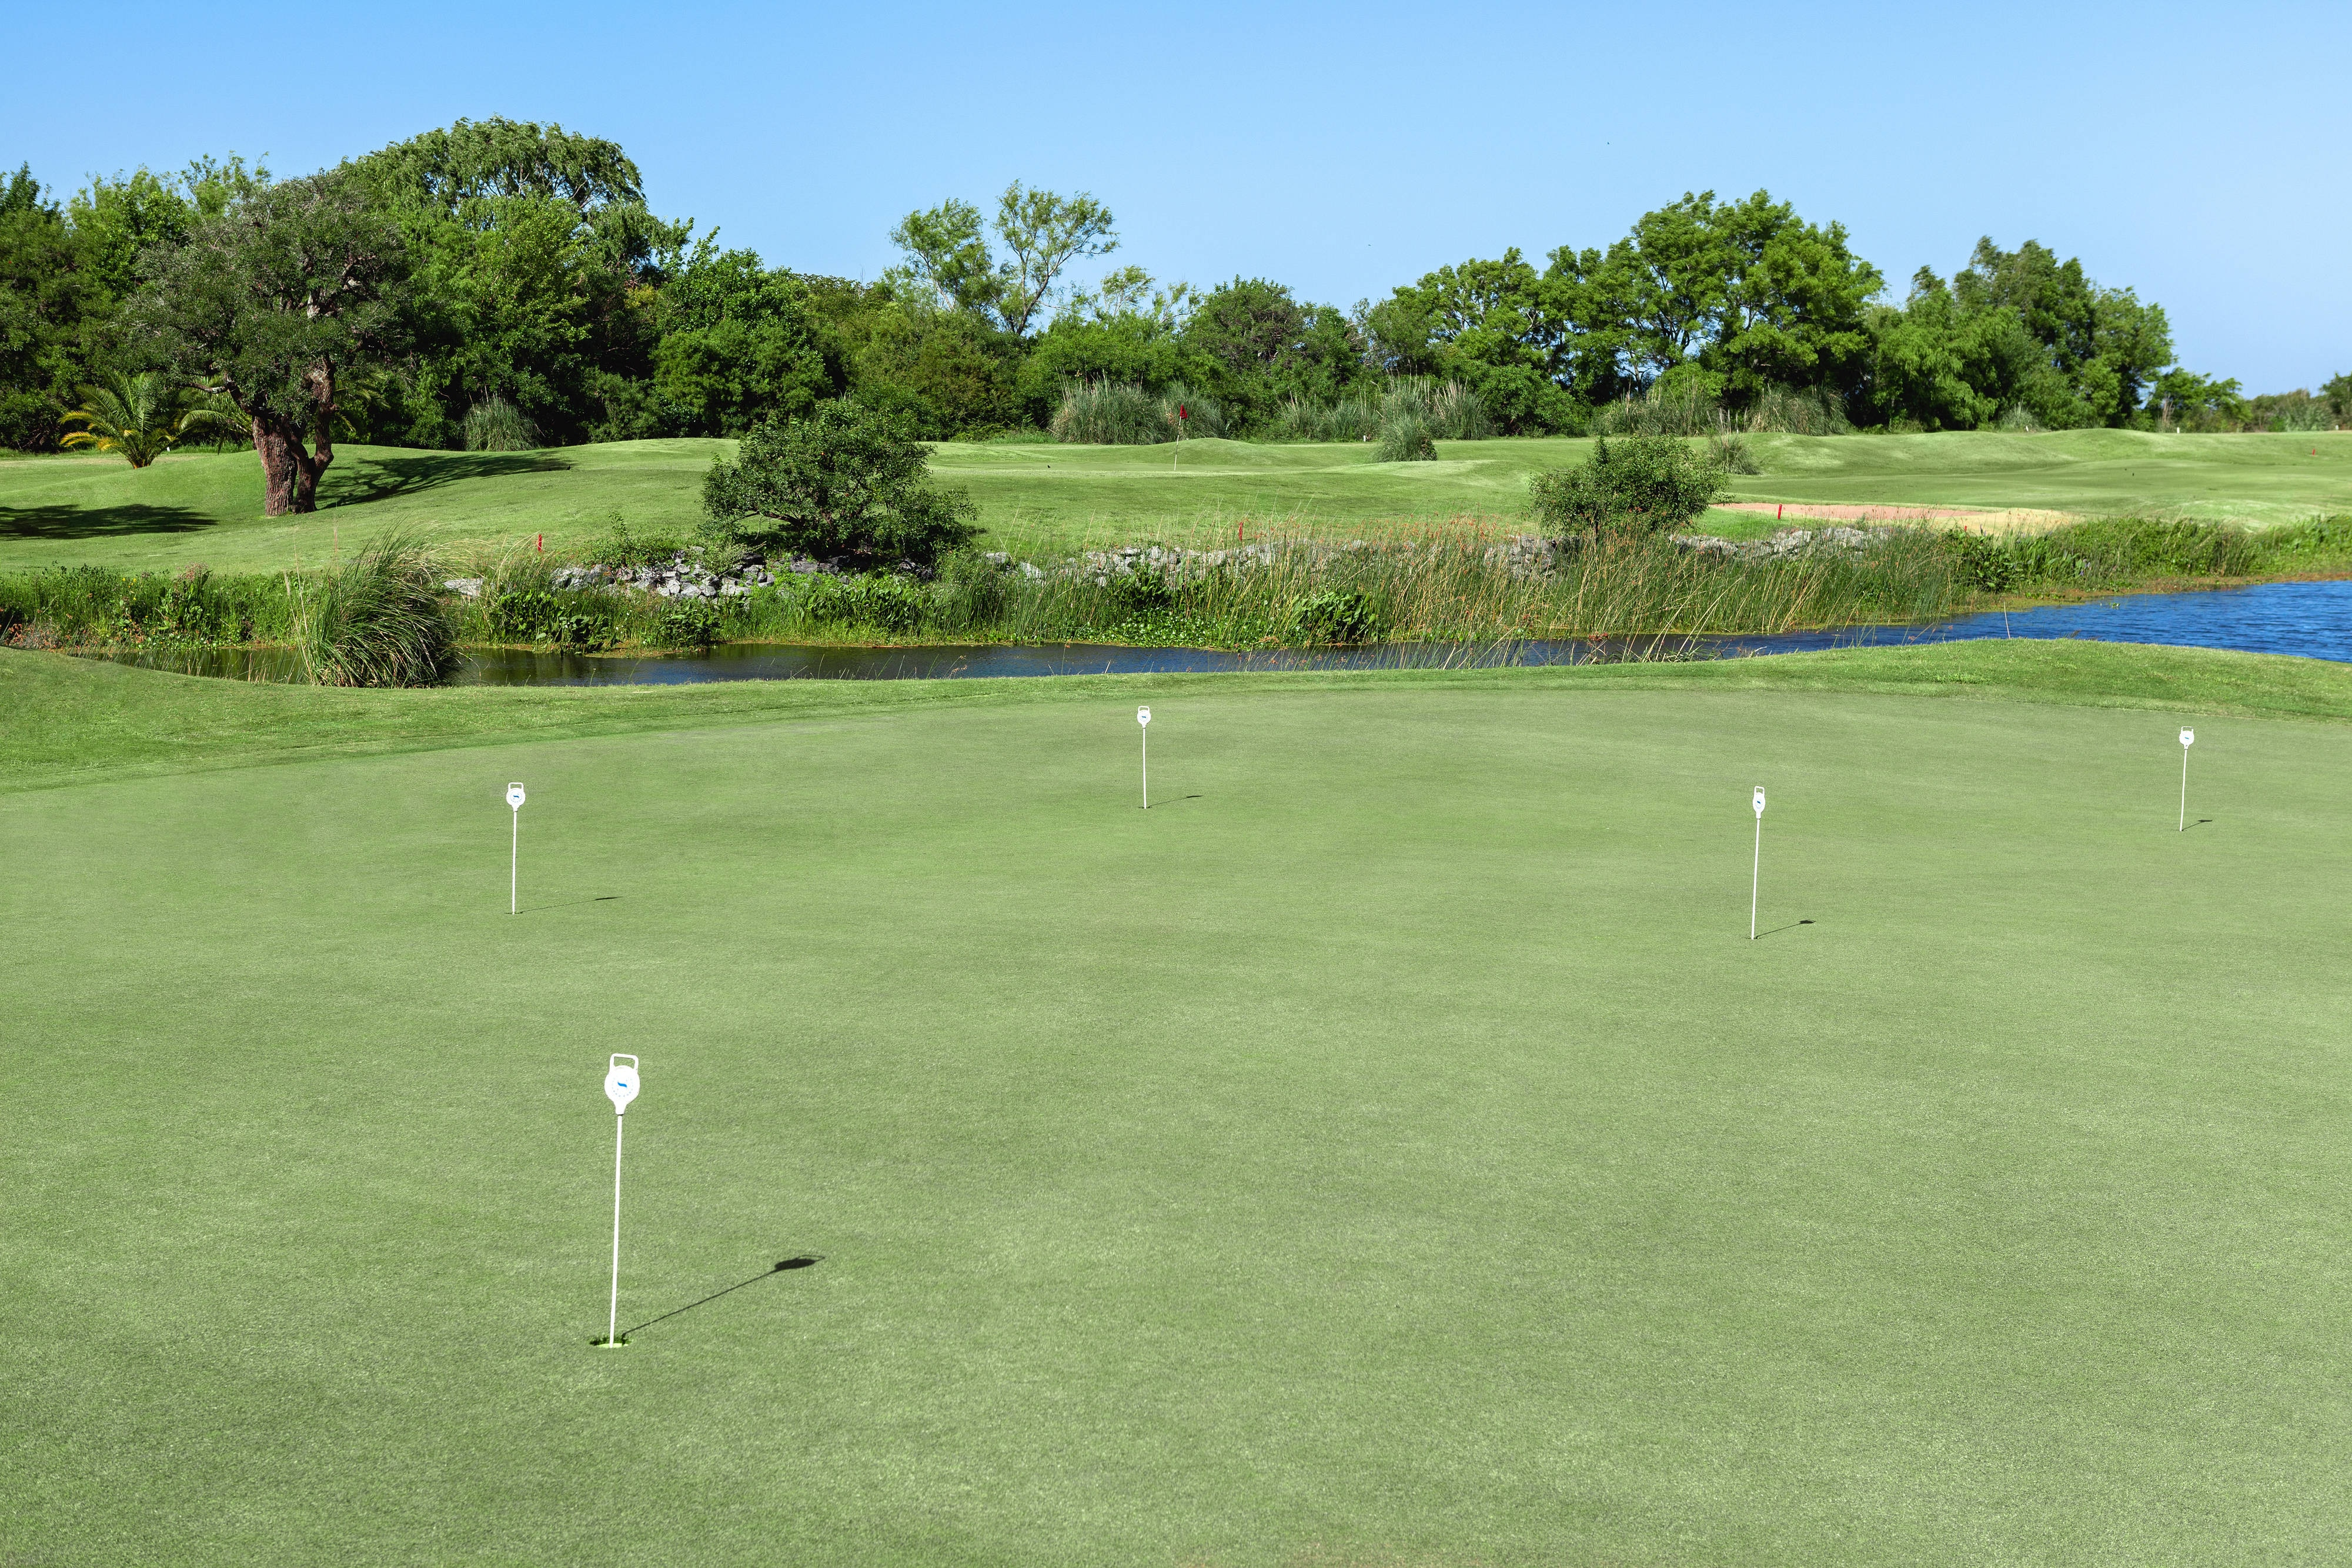 Golf - Putting Green